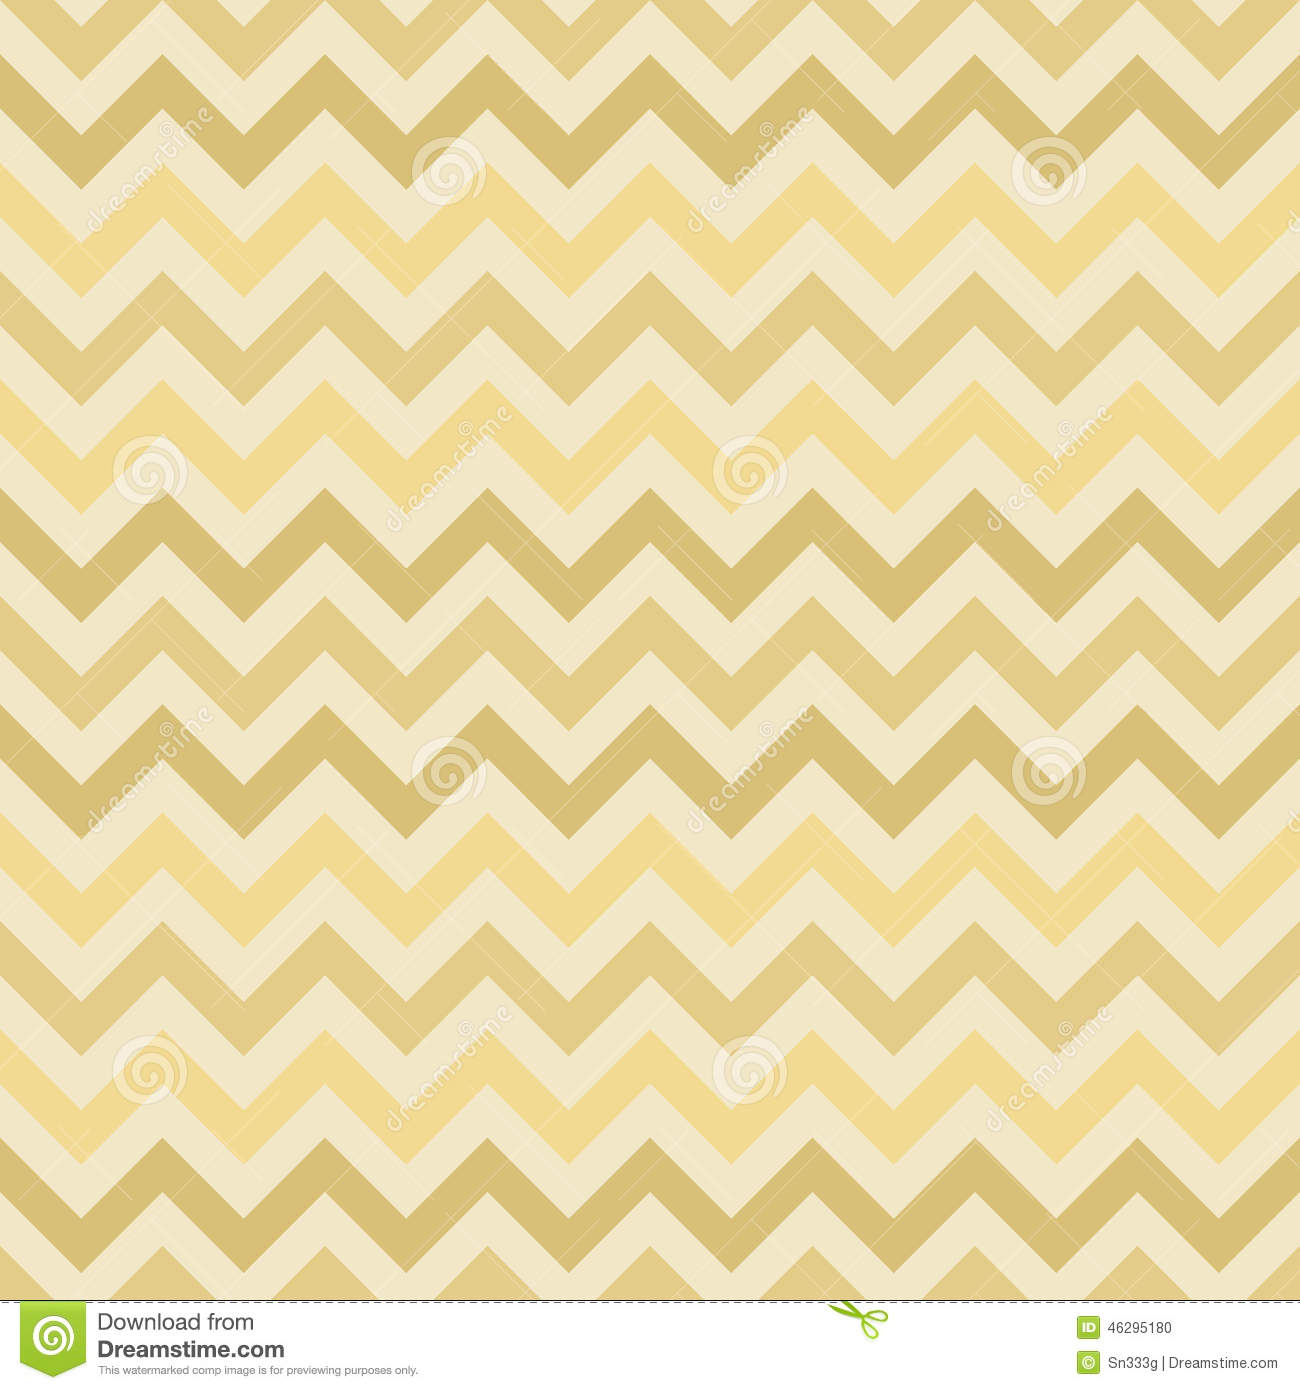 Seamless chevron pattern on linen texture stock photos image - Retro Gold Vector Zigzag Chevron Pattern Stock Vector